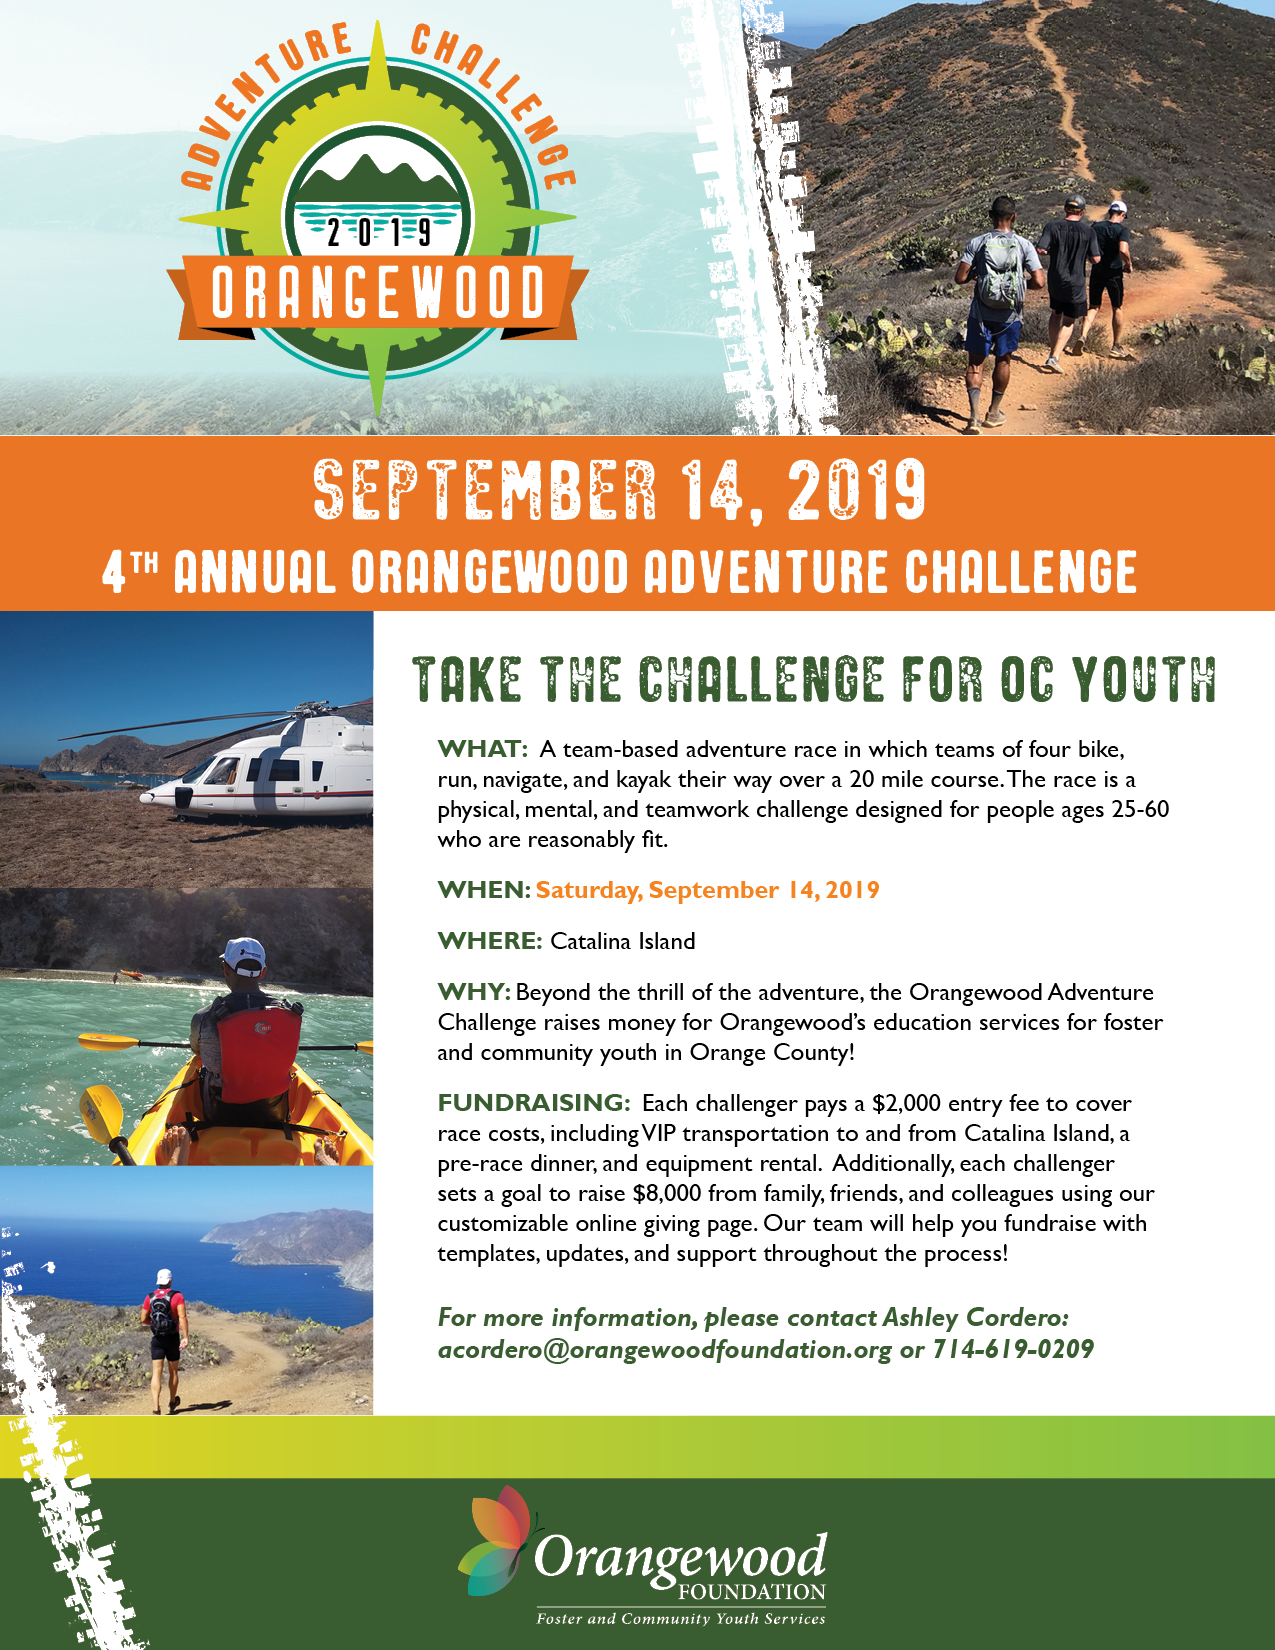 SAVE THE DATE - SATURDAY SEPTEMBER 14, 2019